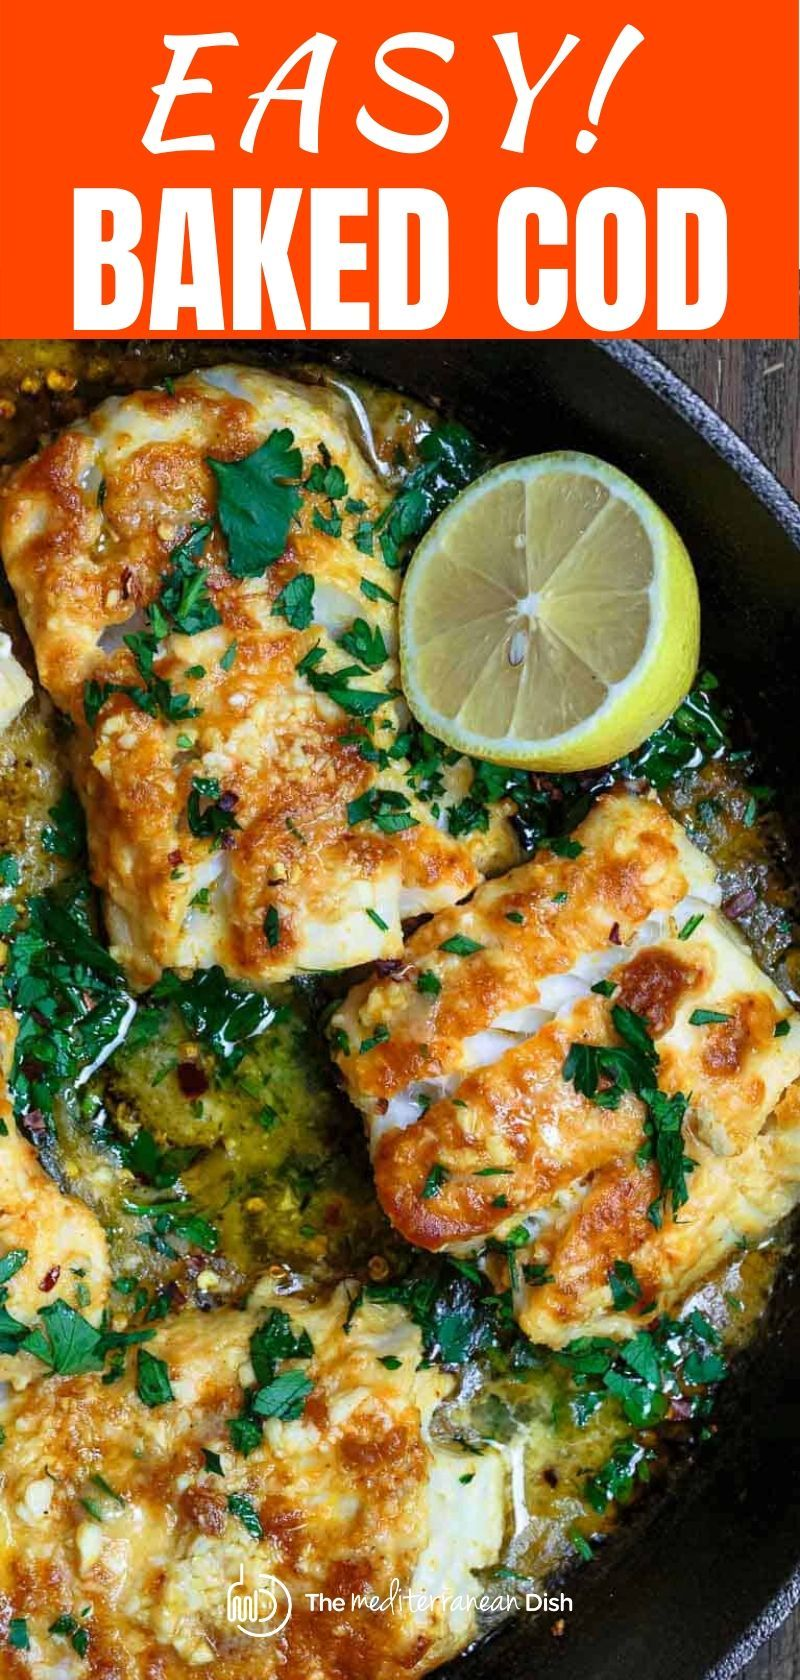 Easy Baked Cod In 2020 Baked Cod Cod Fish Recipes Cod Fillet Recipes